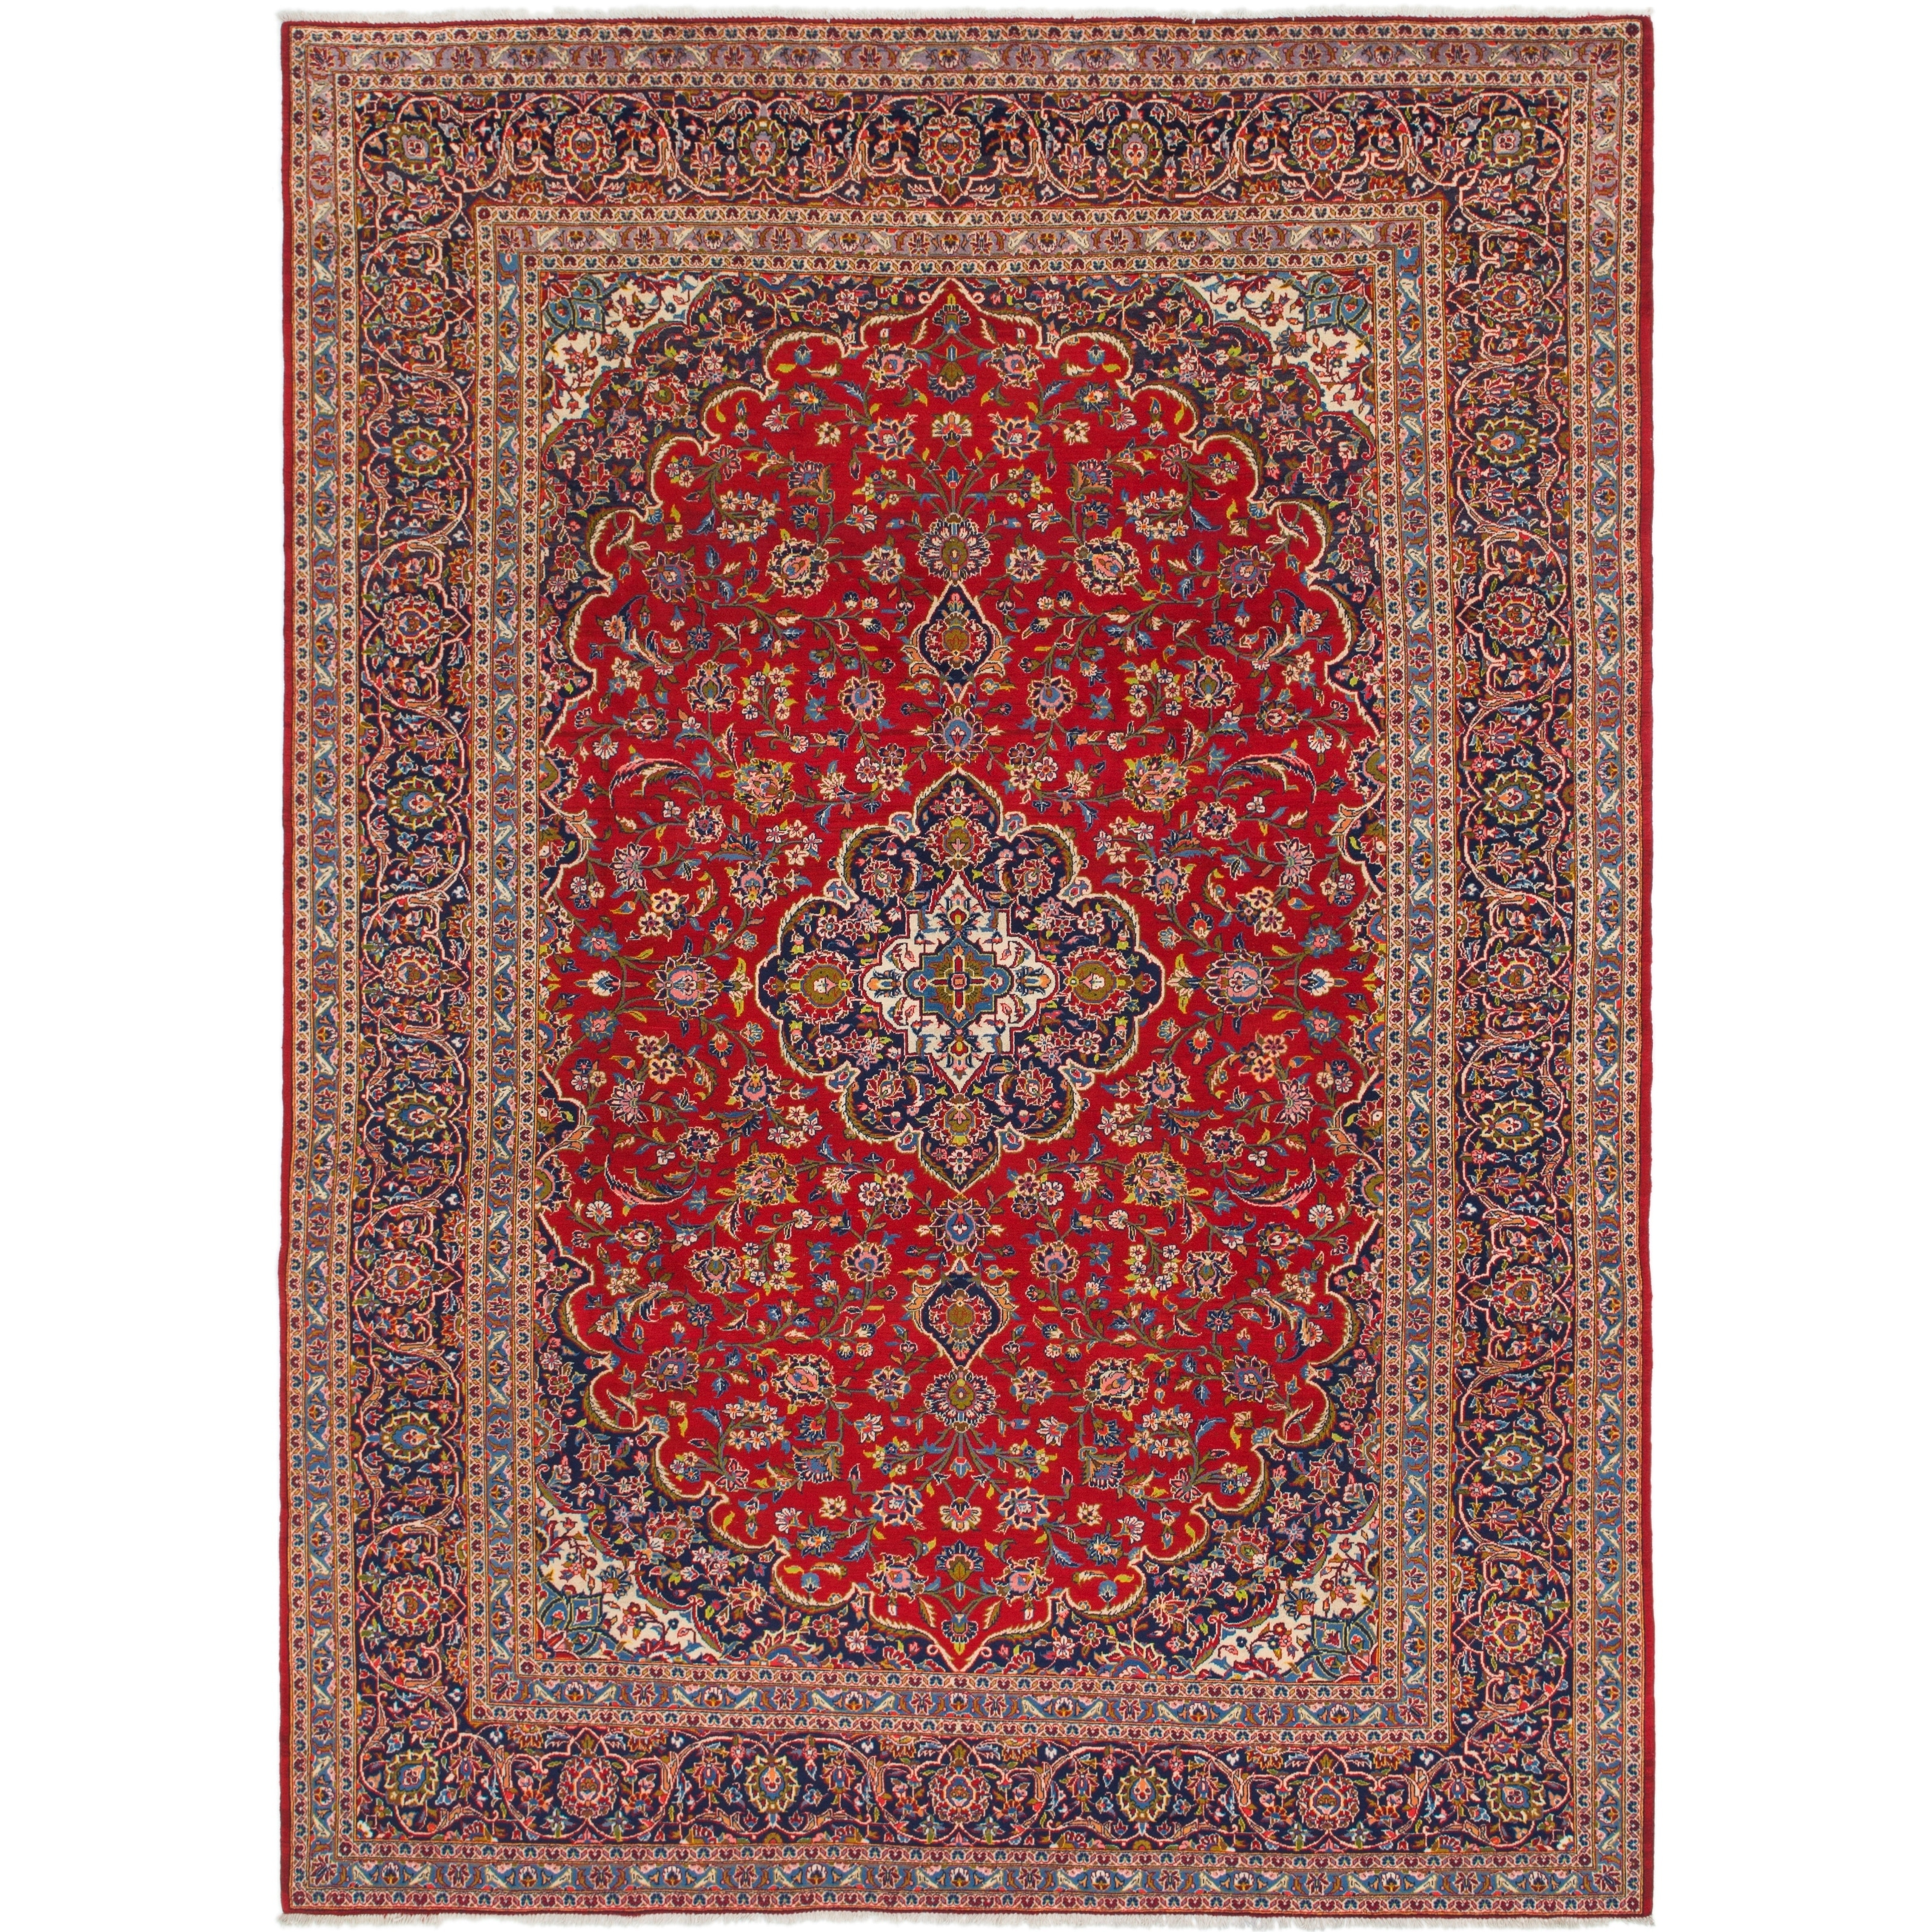 Hand Knotted Kashan Semi Antique Wool Area Rug - 9 8 x 13 (Red - 9 8 x 13)